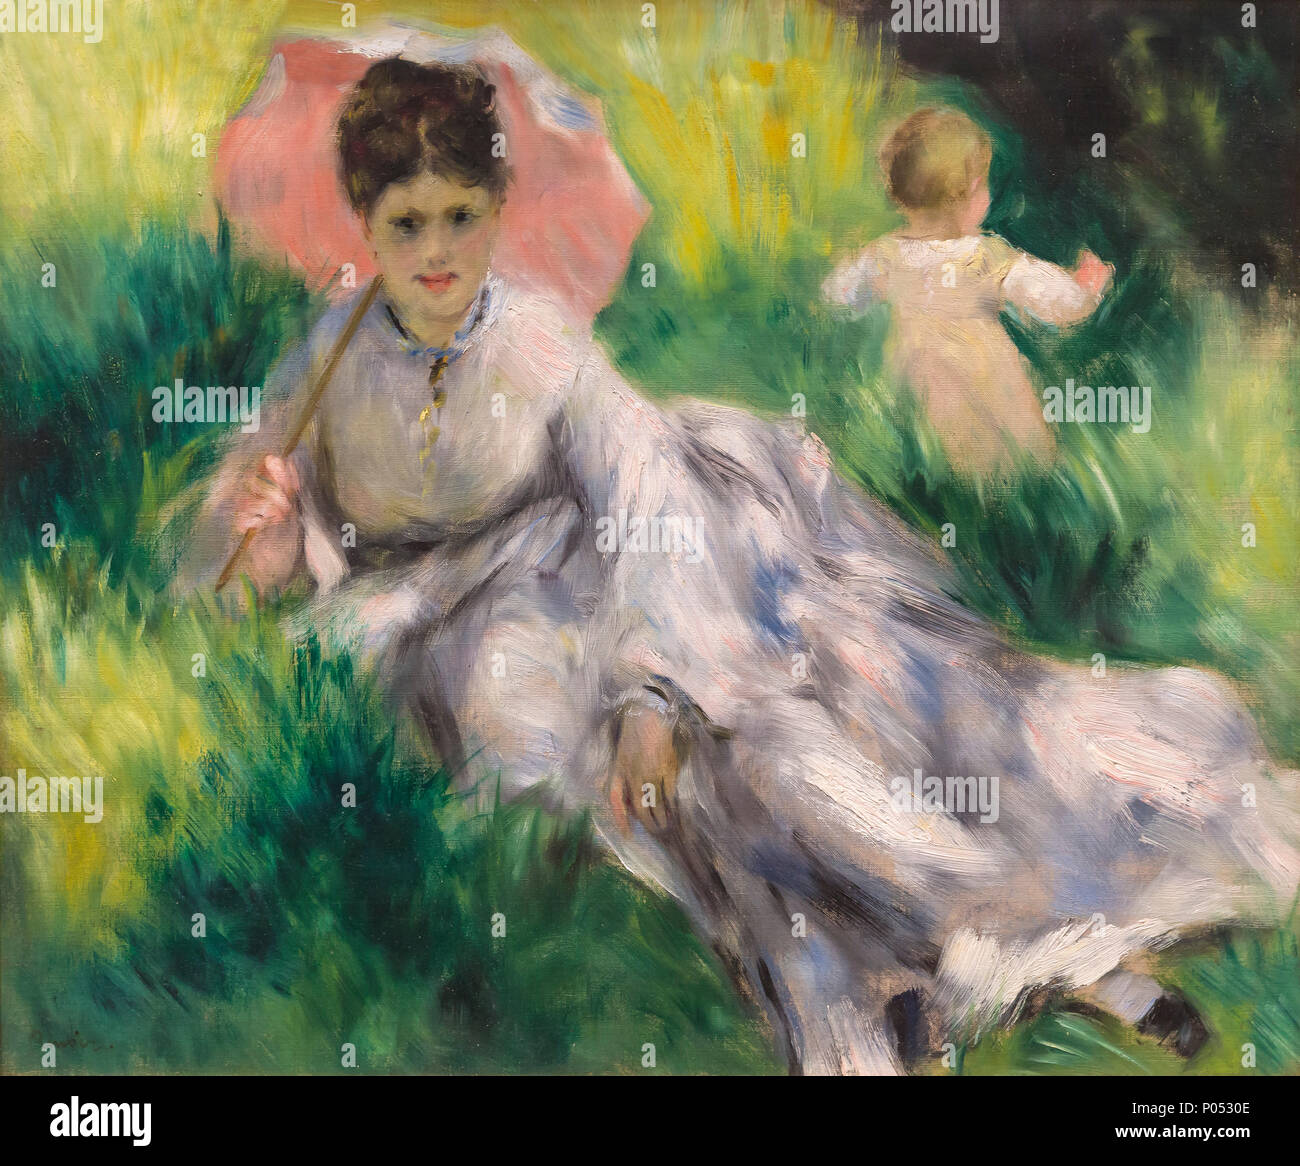 Woman with a Parasol and Small Child on a Sunlit Hillside, Pierre-Auguste Renoir, circa 1875, Museum of Fine Arts, Boston, Mass, USA, North America - Stock Image